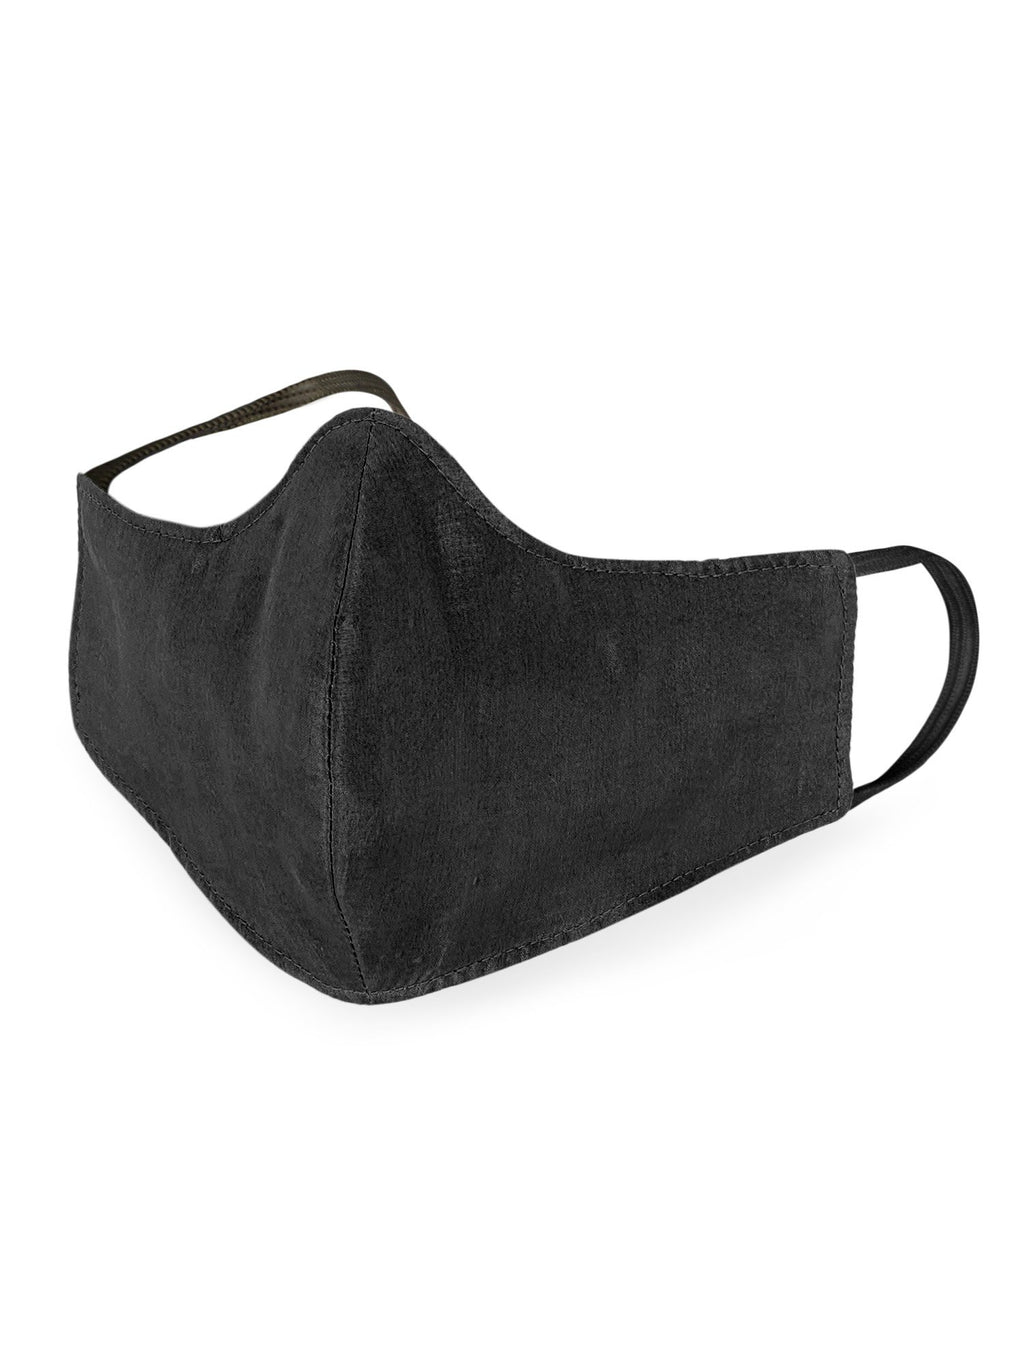 Reusable Silk Face Mask- Black - the naked laundry.